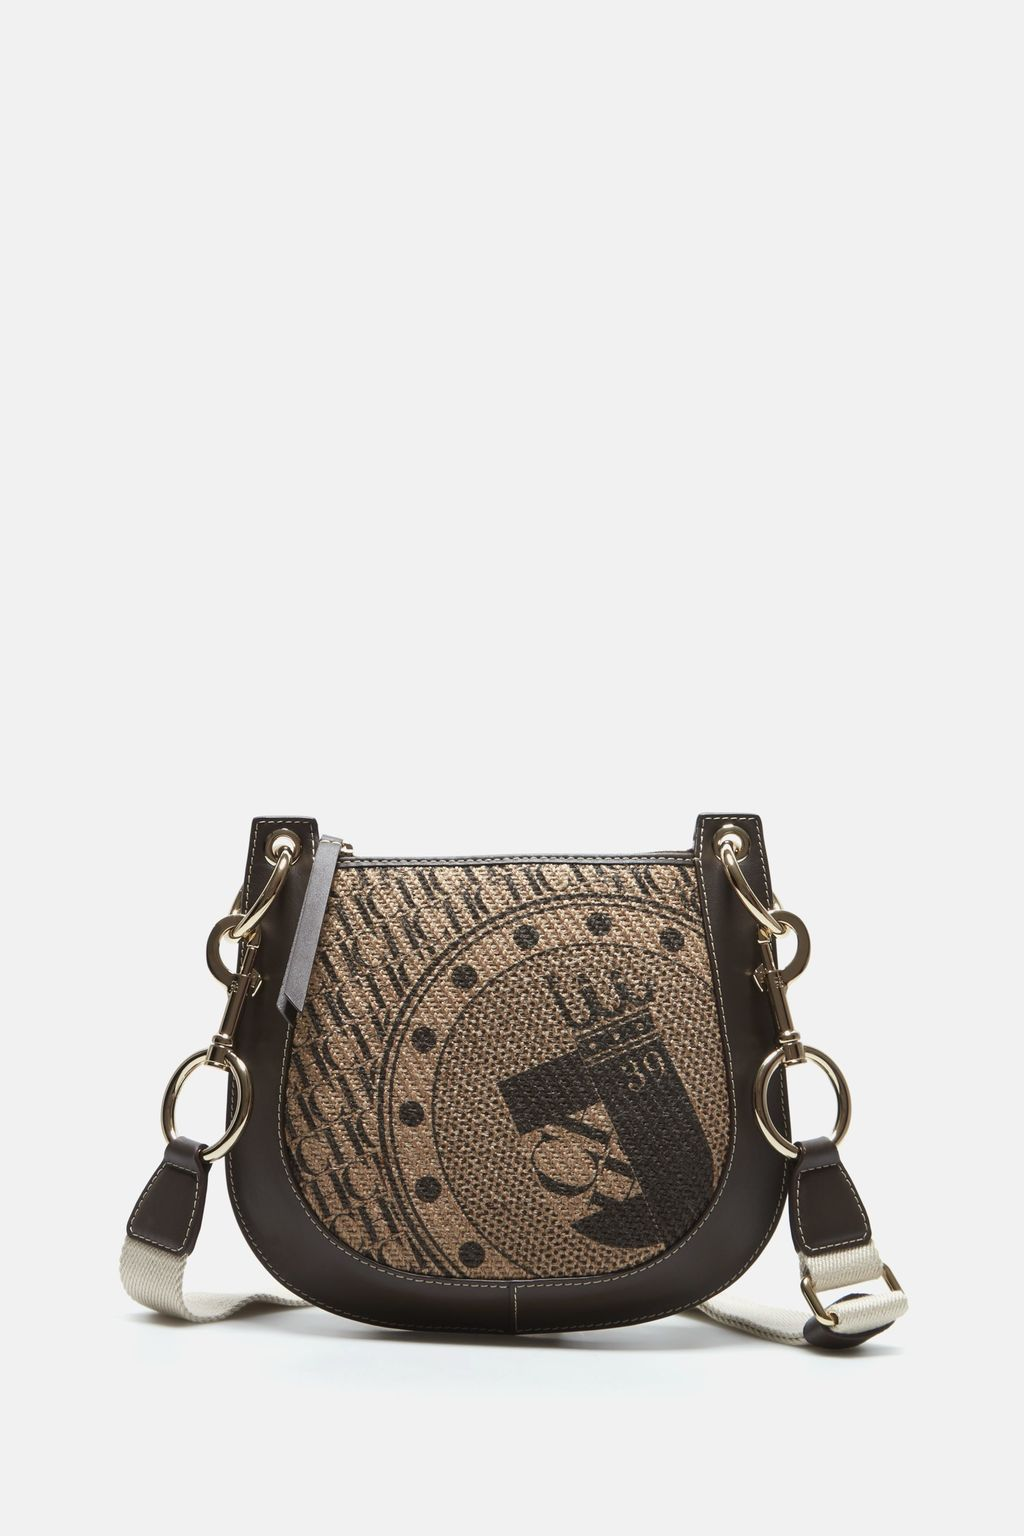 Castañuela 5 | Medium shoulder bag